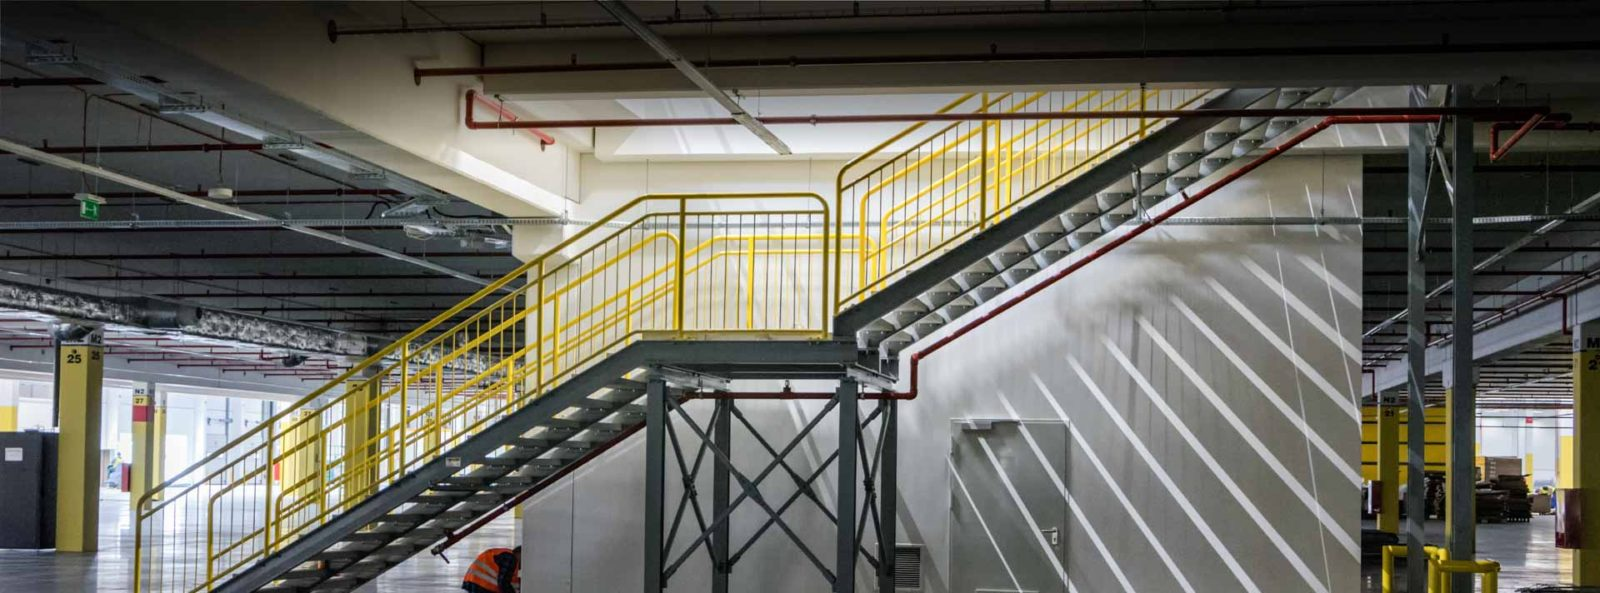 technical-stairs